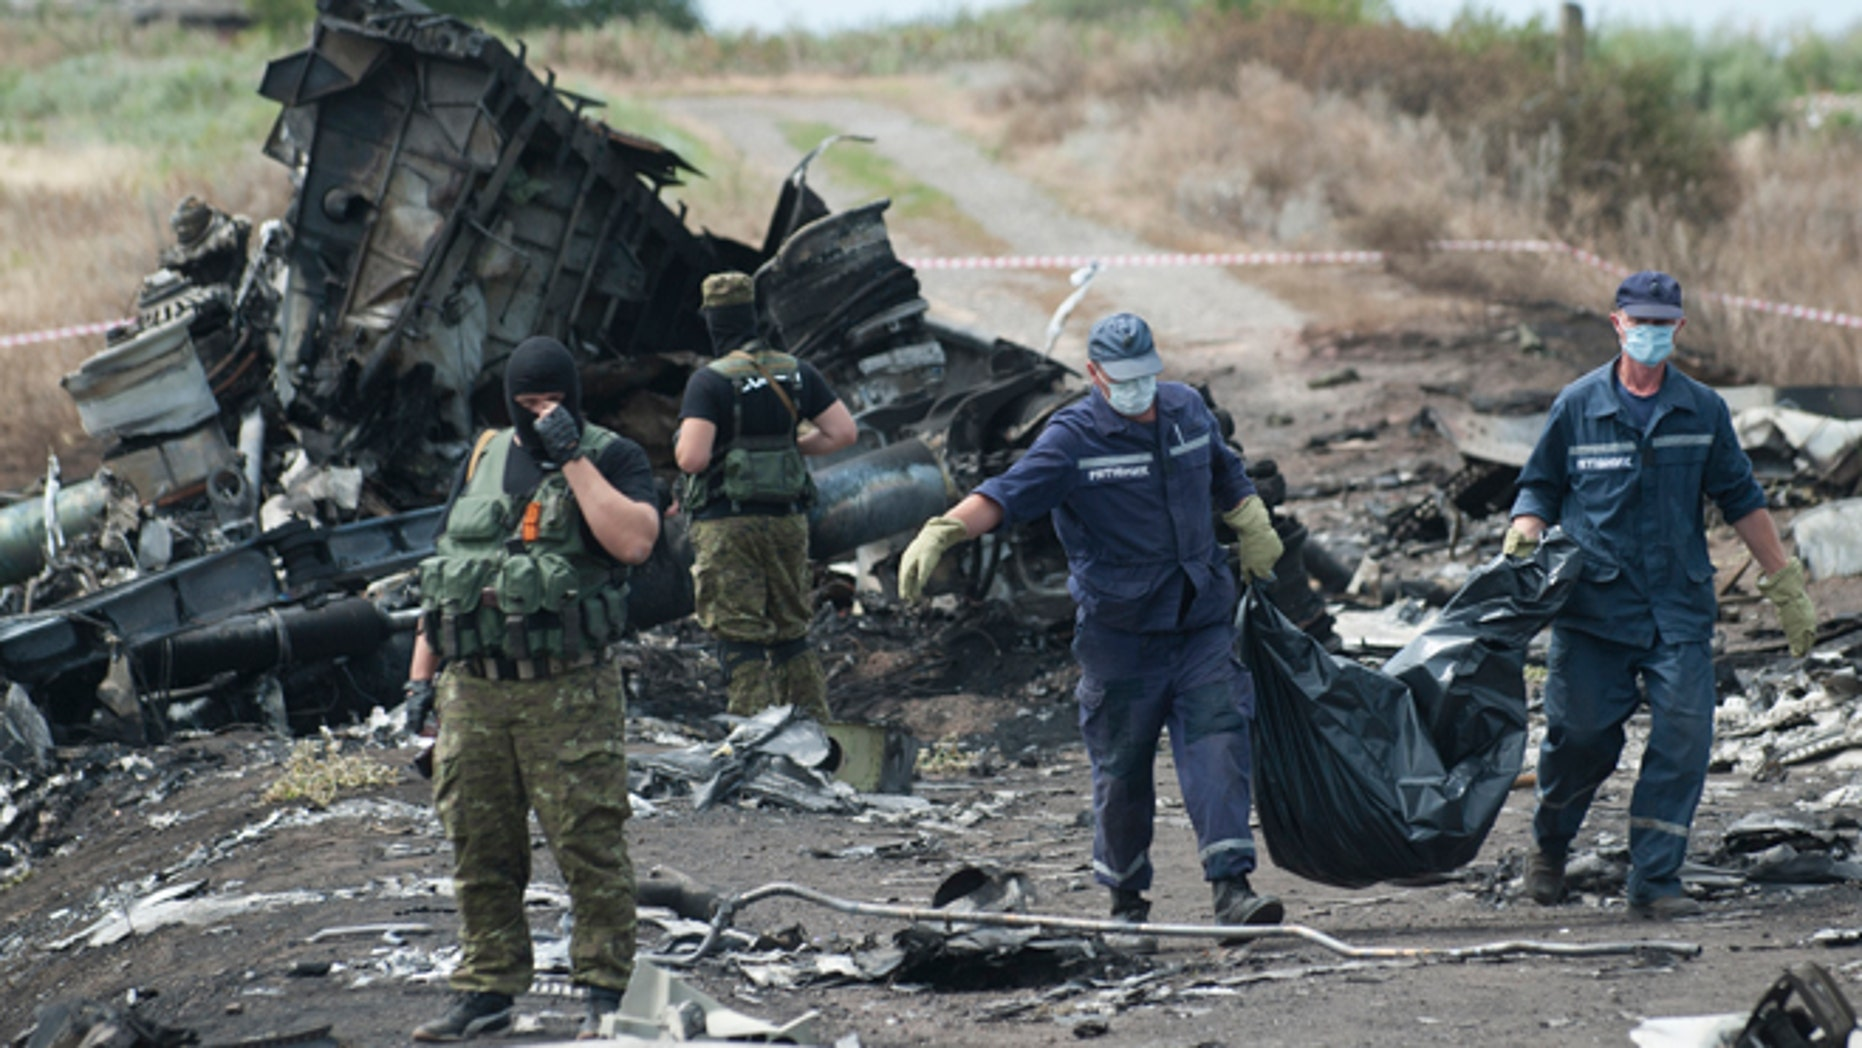 July 20, 2014: Ukrainian Emergency workers carry a stretcher with a victim's body in a bag as pro-Russian fighters stand in guard at the crash site of Malaysia Airlines Flight 17 near the village of Hrabove, eastern Ukraine.